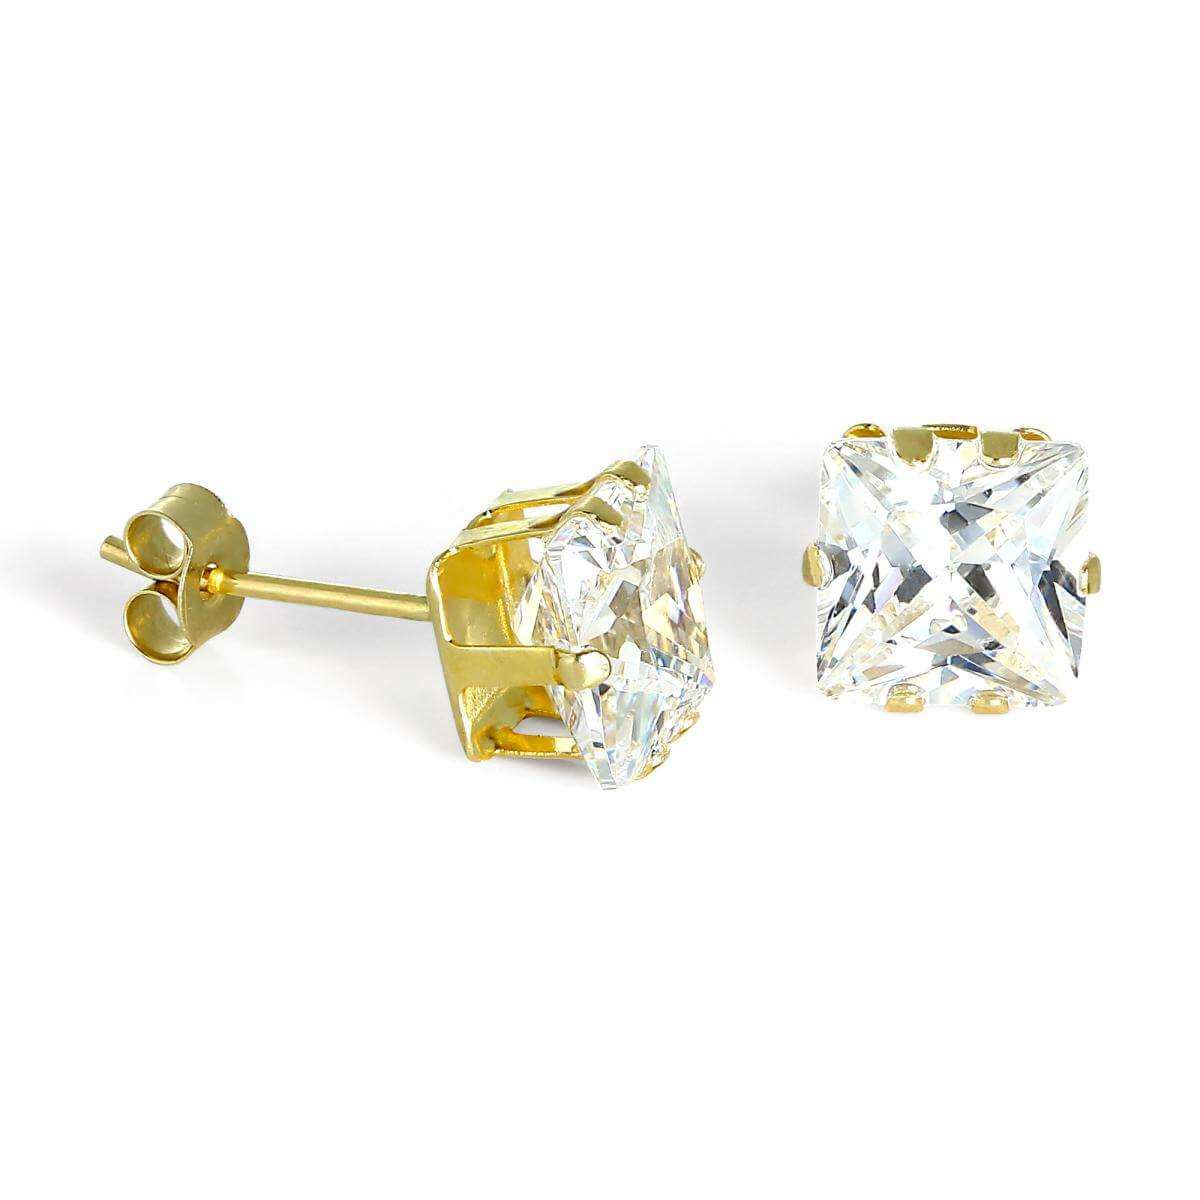 9ct Gold & 6mm Square Clear CZ Crystal Stud Earrings